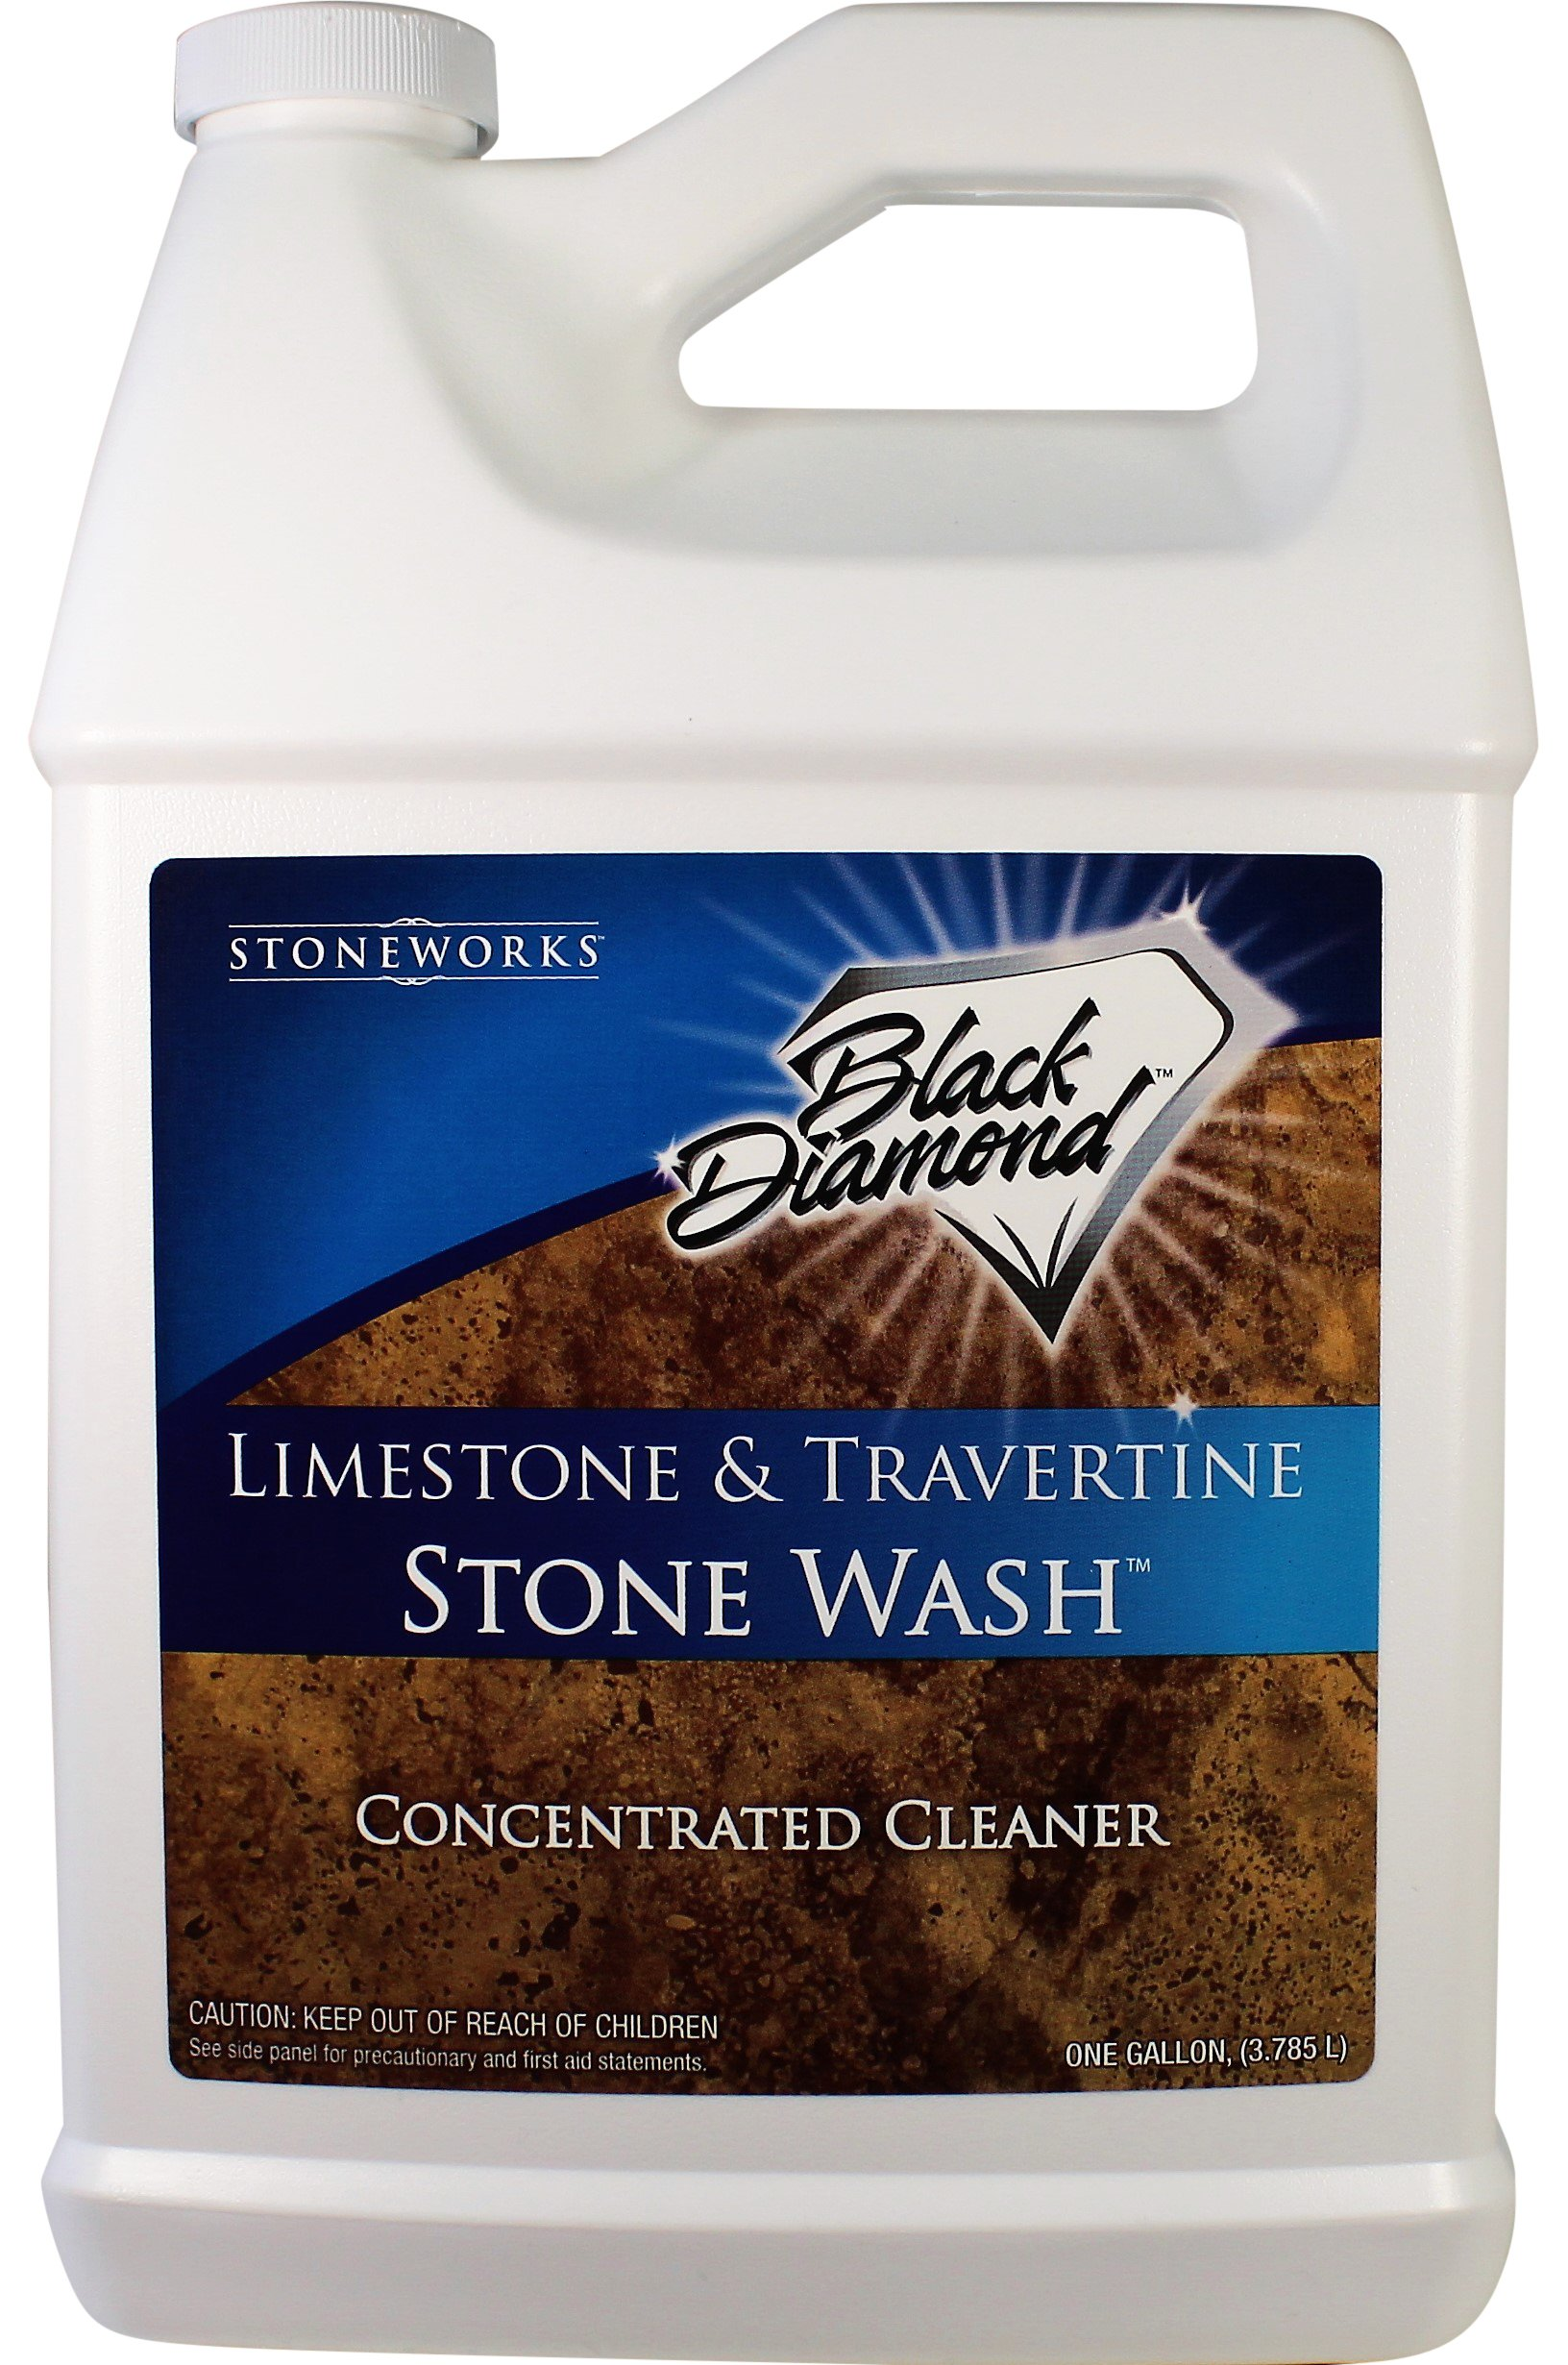 Black Diamond Stoneworks Limestone and Travertine Floor Cleaner: Natural Stone, Marble, Slate Ph Neutral 1 Gallon Concentrate